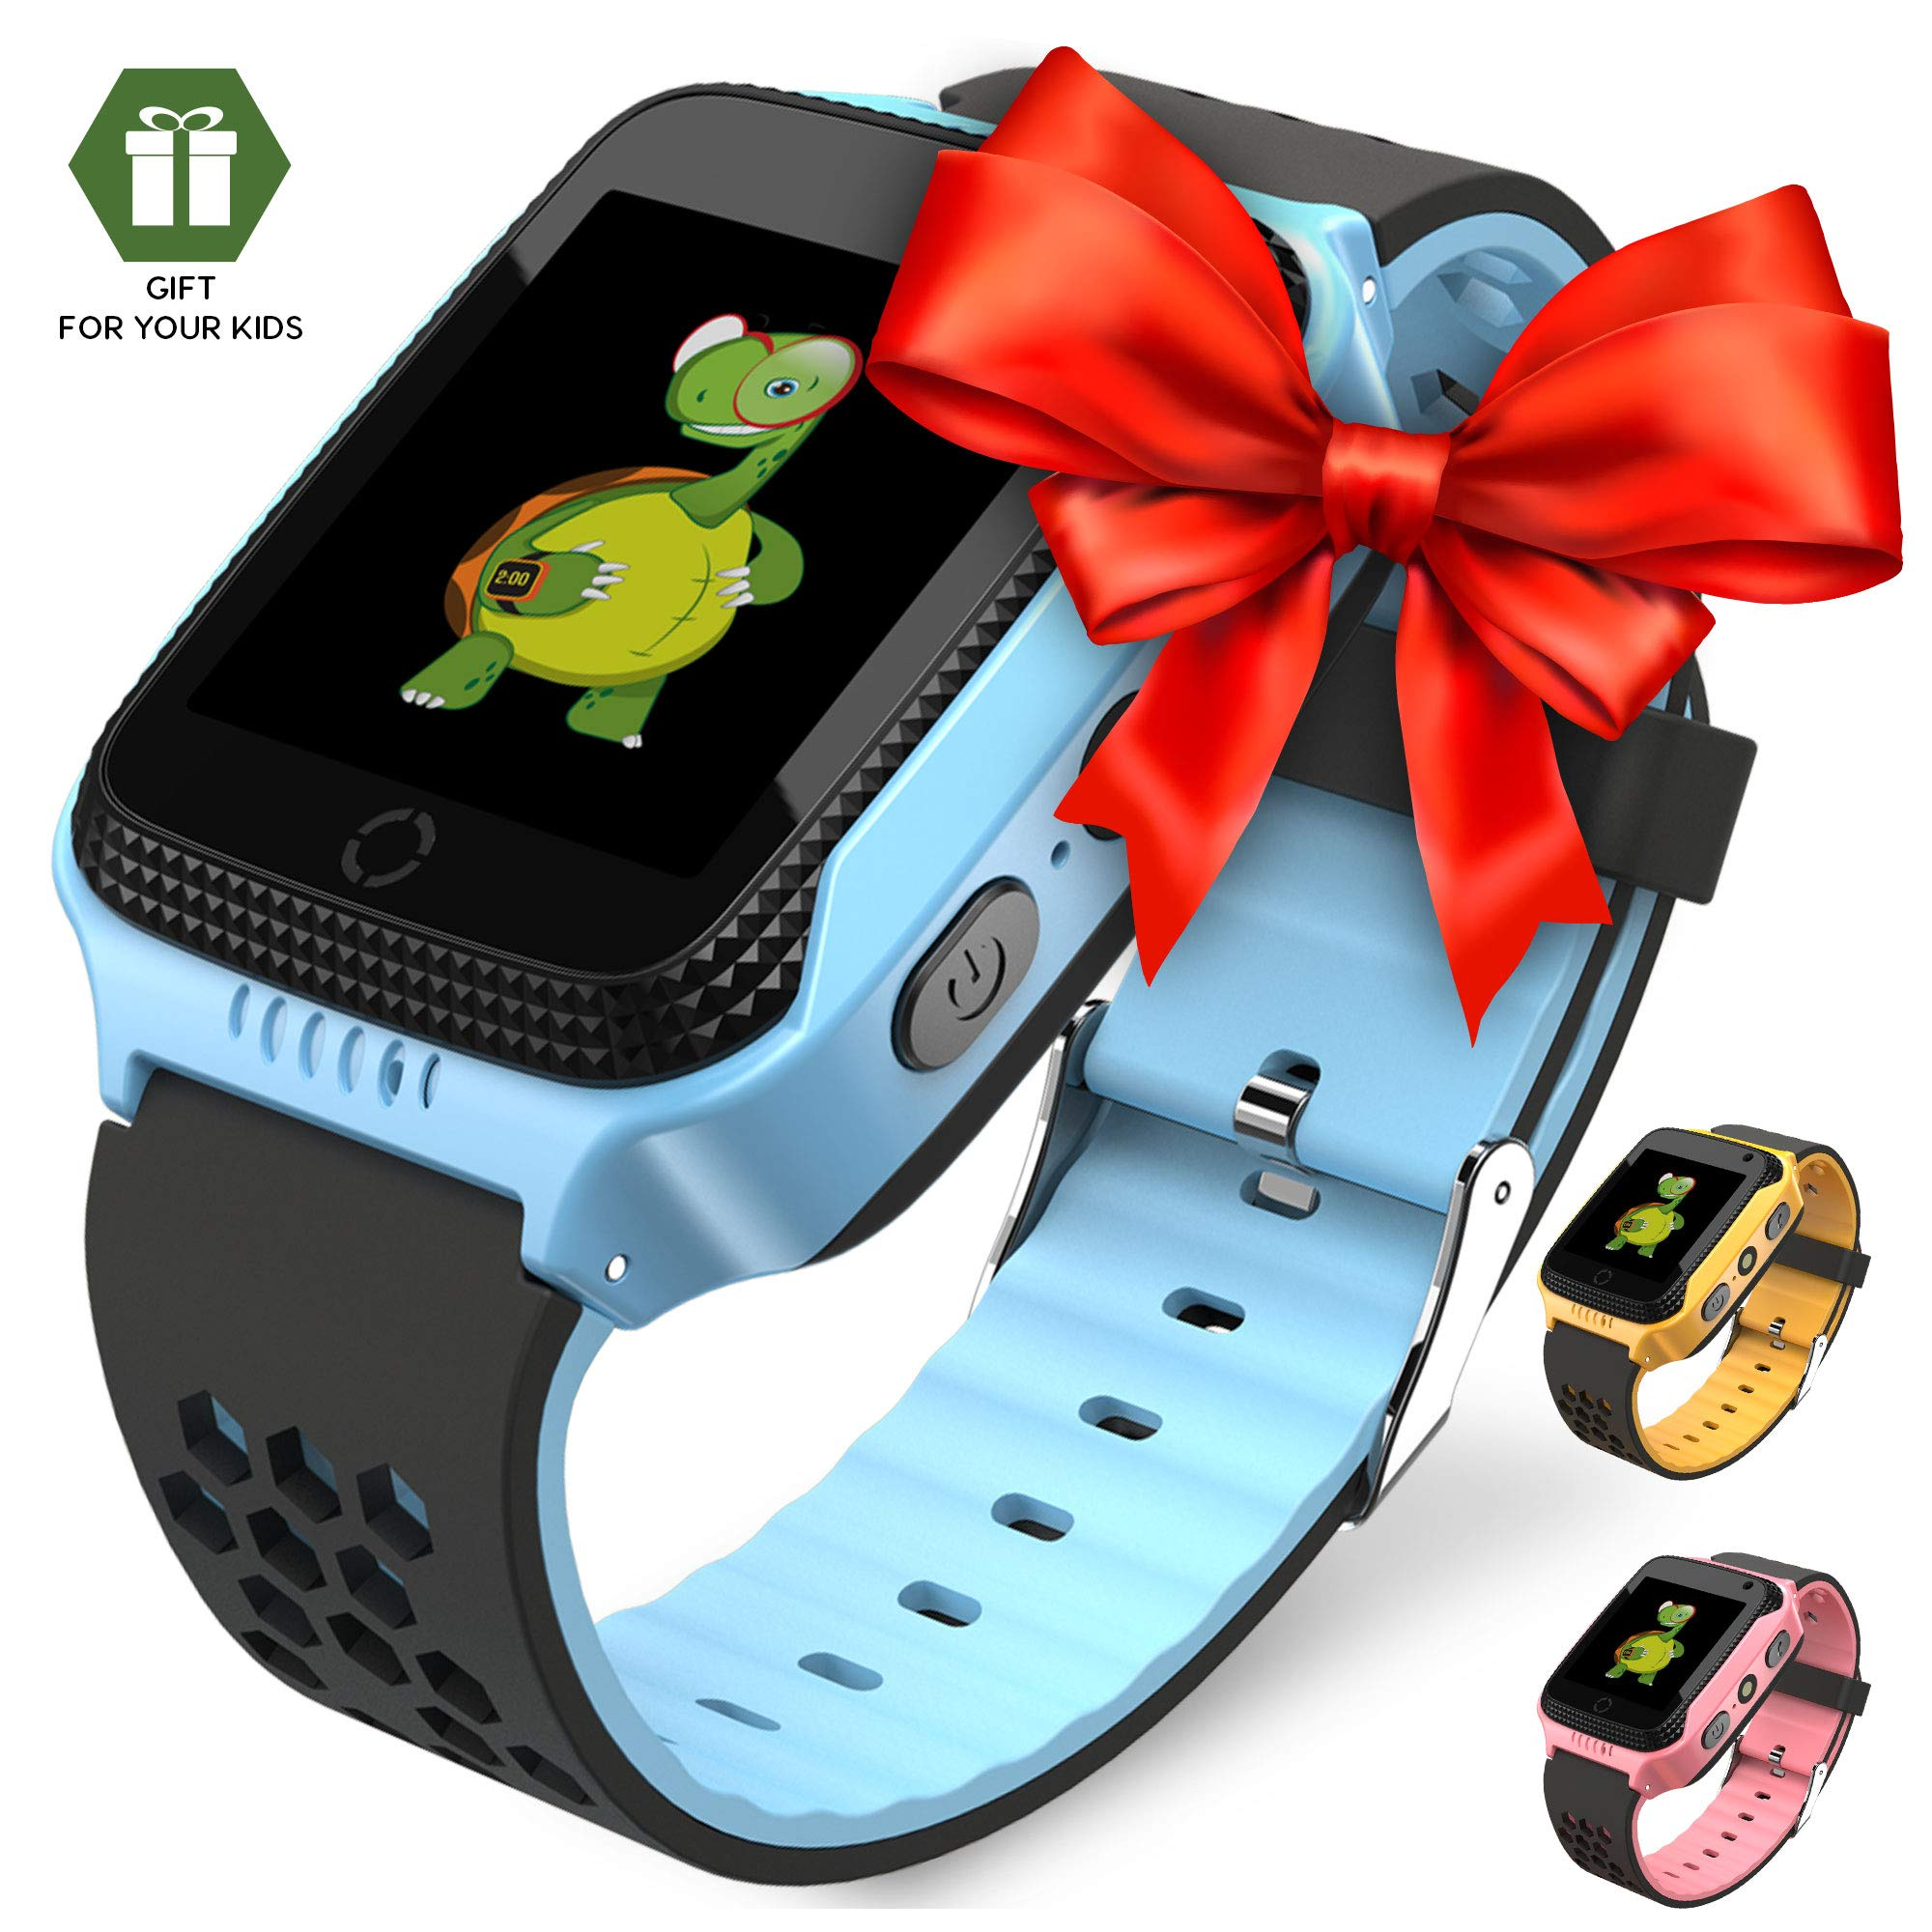 OLTEC 【2019 Update】 Smart Watch for Kids - Smart Watches for Boys Smartwatch GPS Tracker Watch Wrist Android Mobile Camera Cell Phone Best Gift for Girls Children boy Pink Blue Yellow